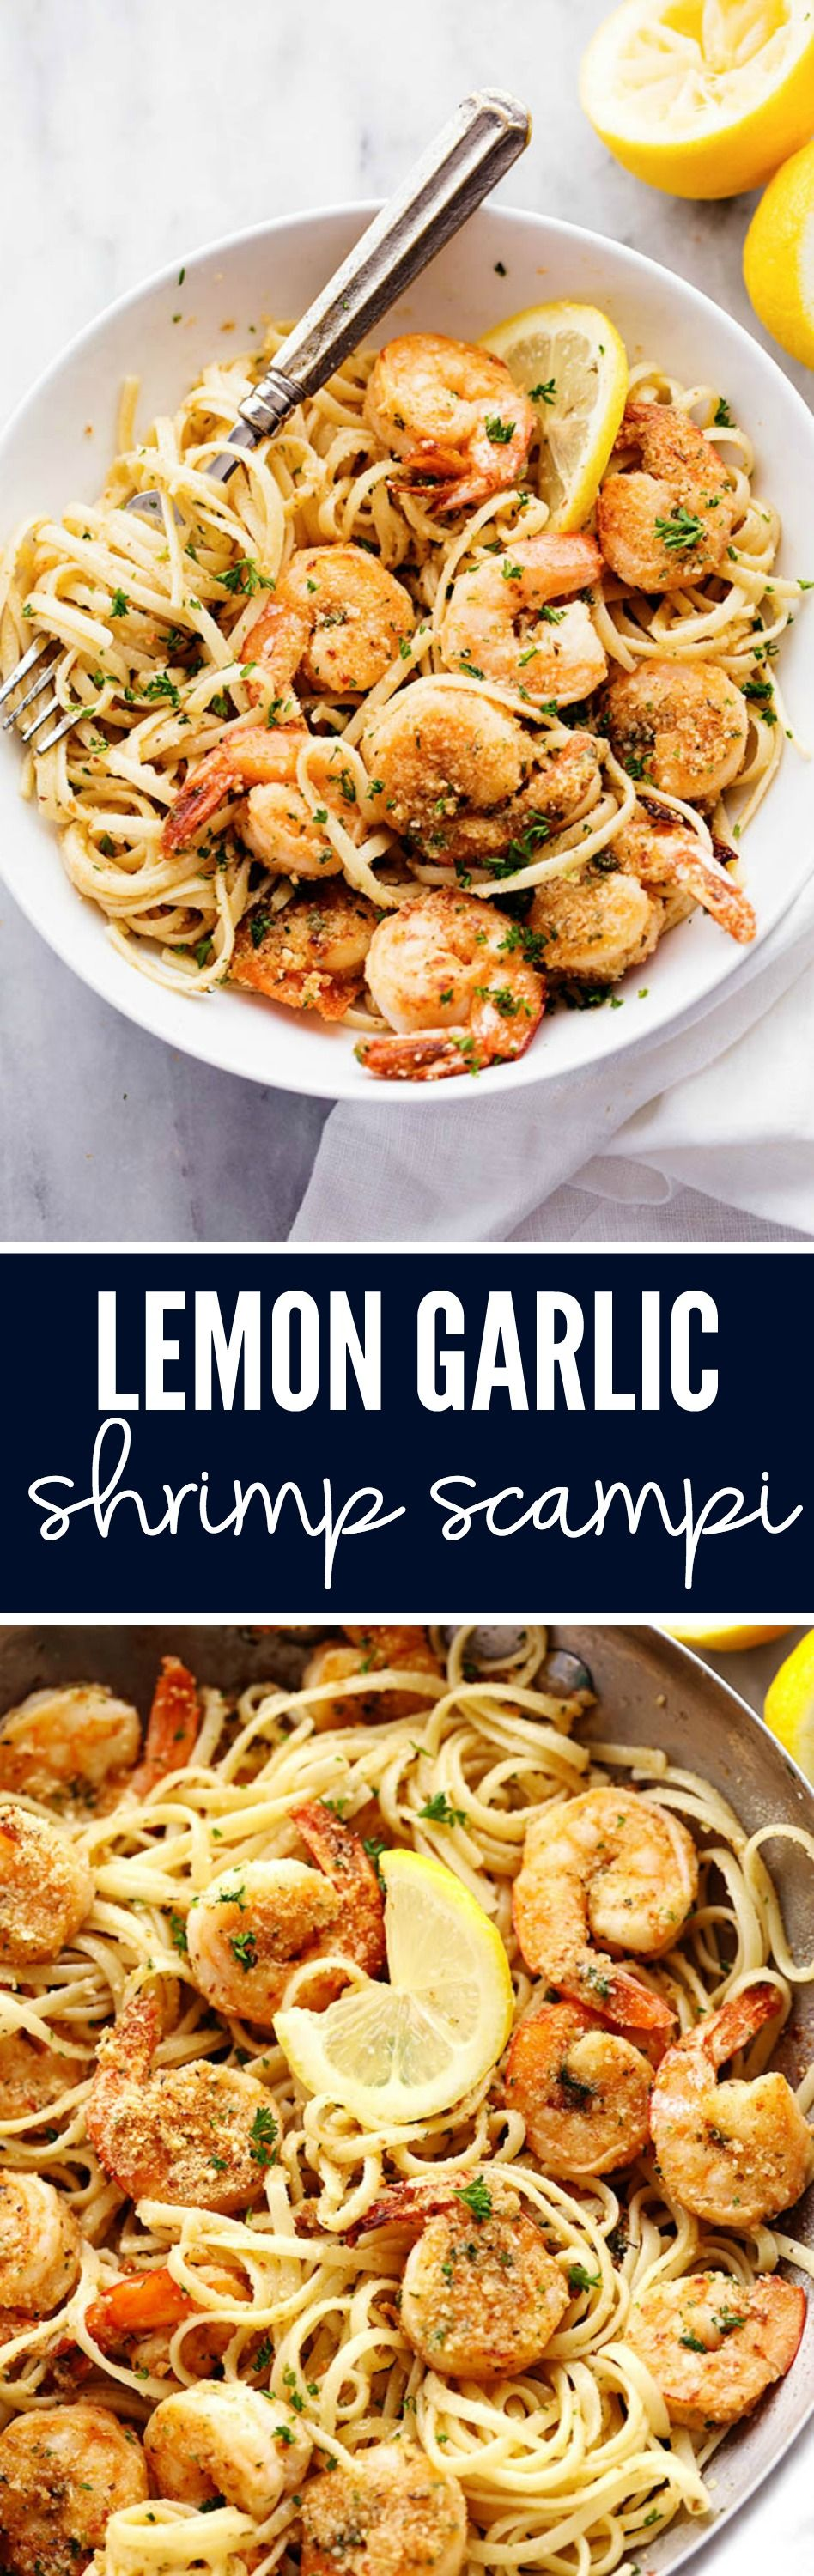 Lemon Garlic Shrimp Scampi is a delicious 30 minutes meal that cooks in a buttery lemon garlic sauce and breaded with a parmesan